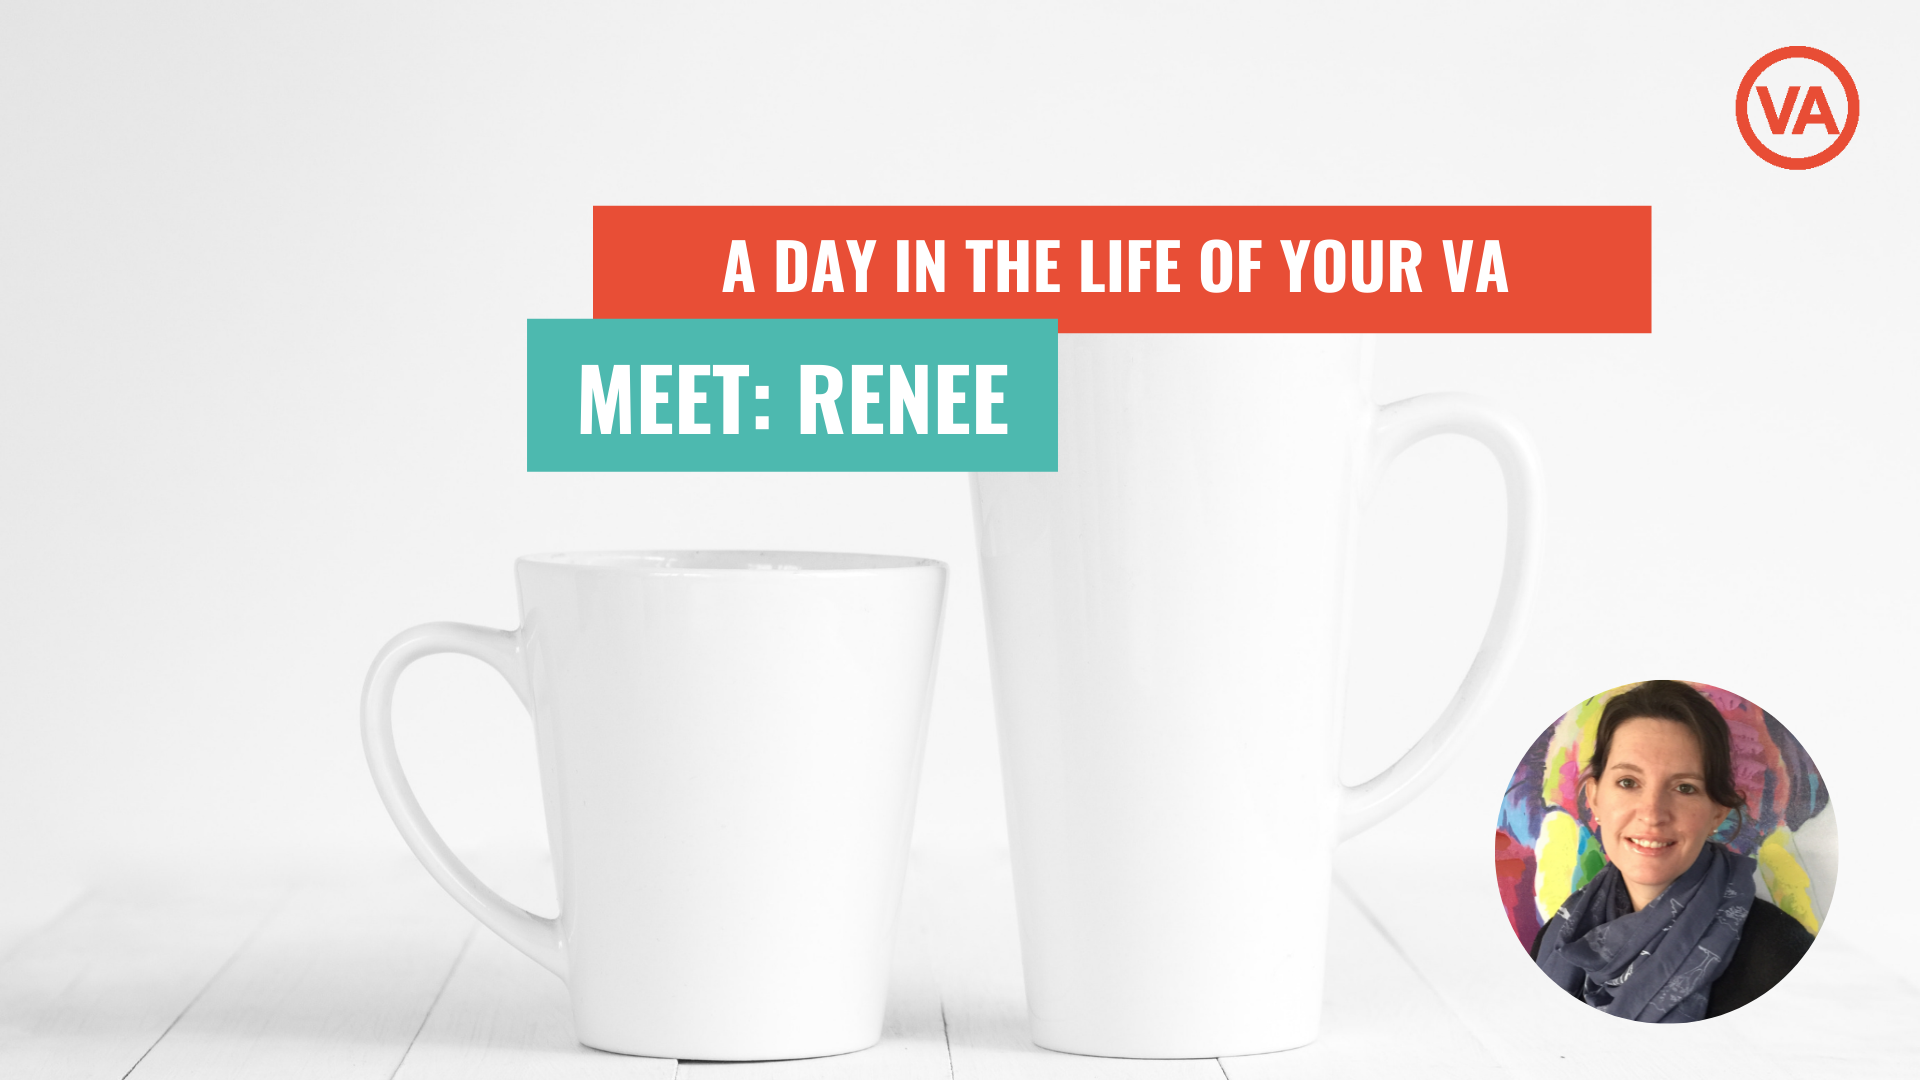 A Day in the Life of a VA: Meet Renee